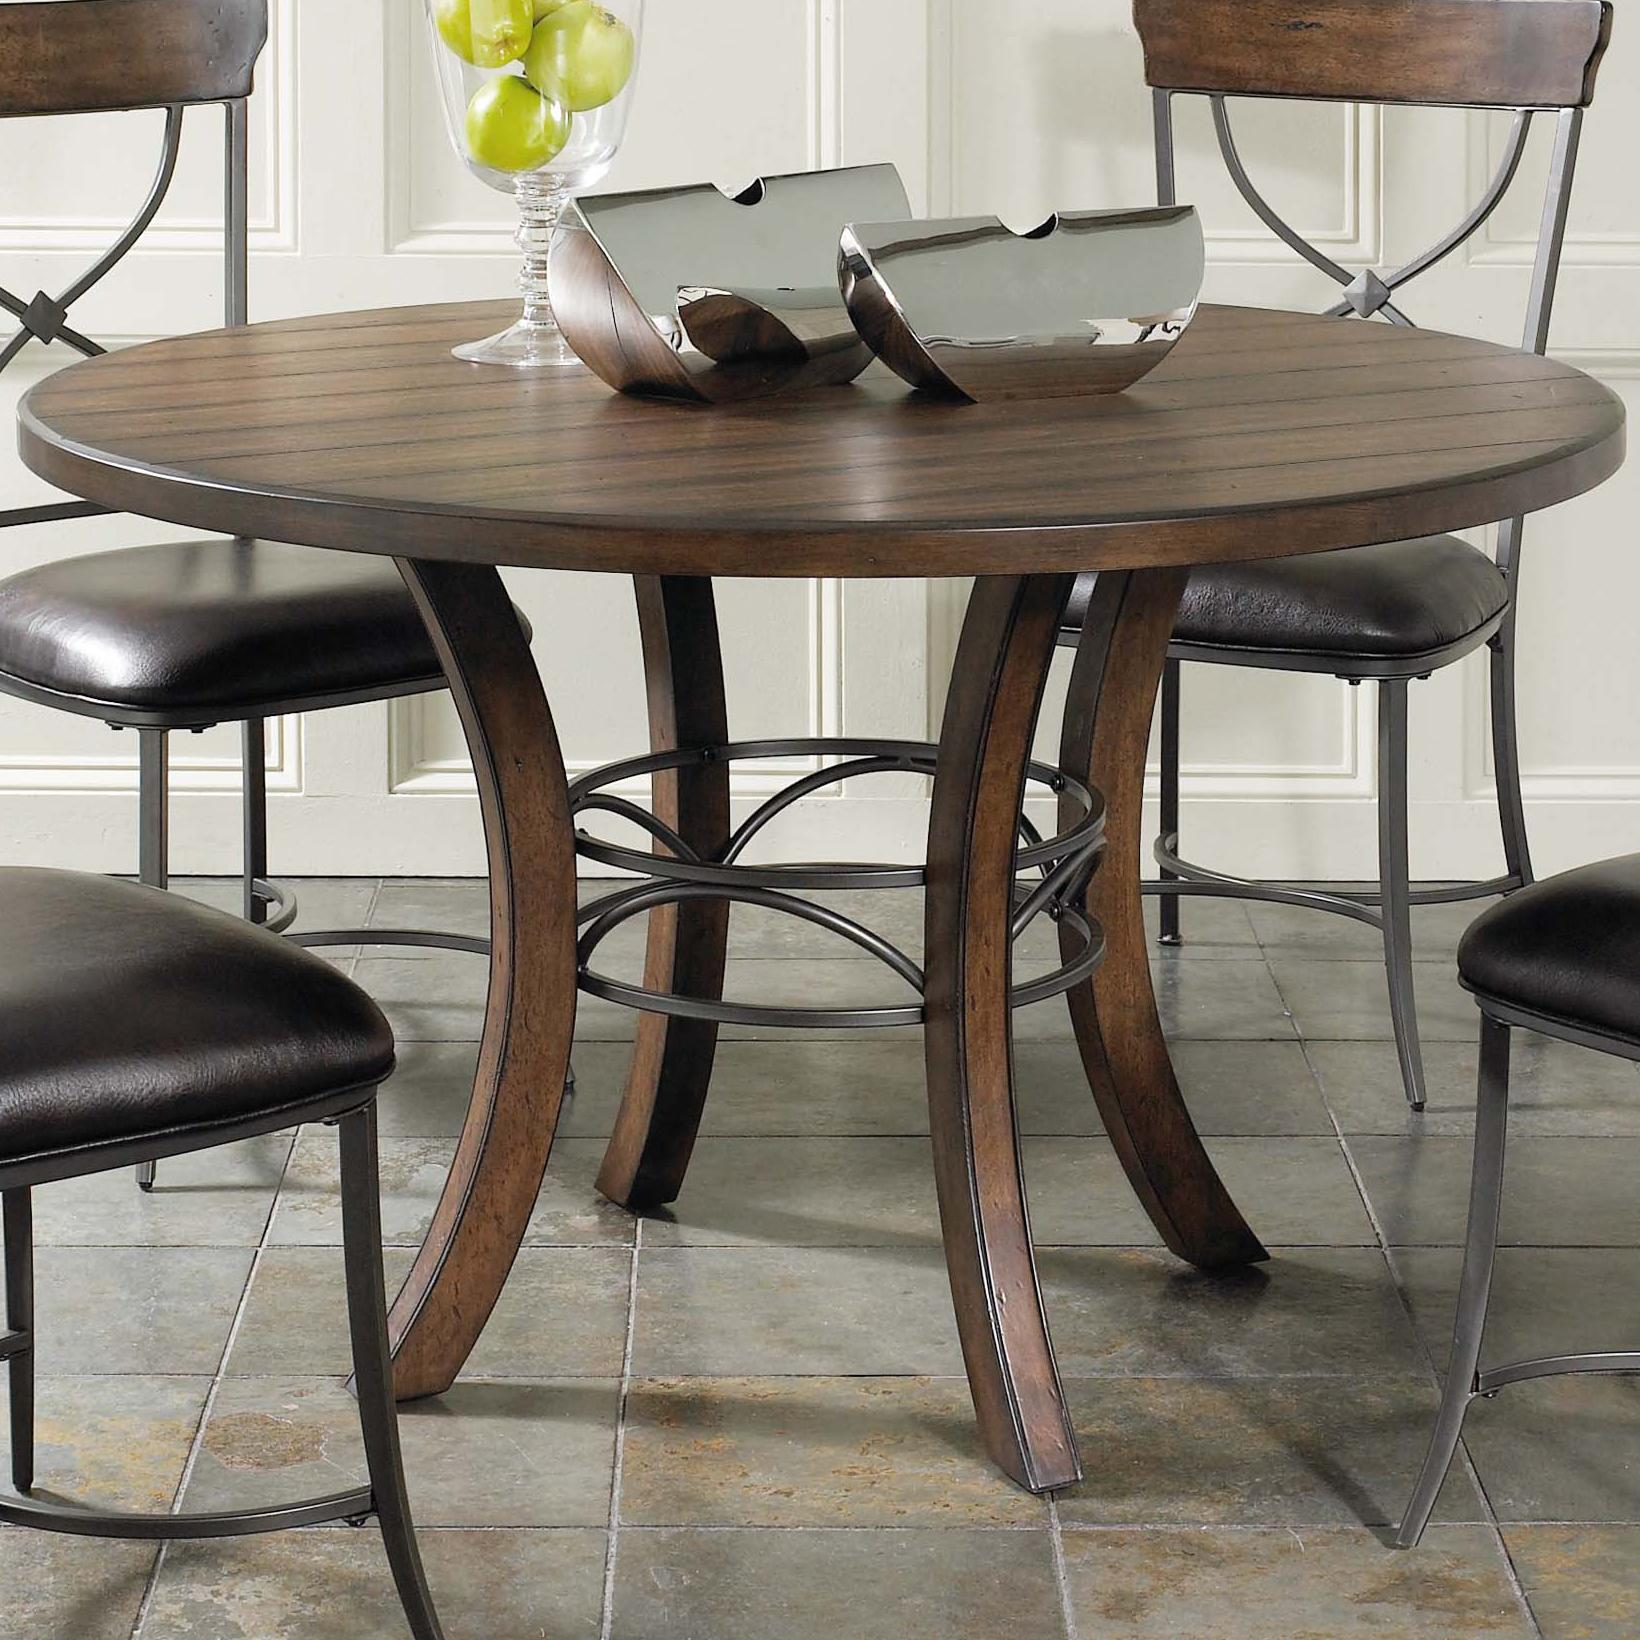 Cameron Round Wood Dining Table with Metal Acent Base - Rotmans ...